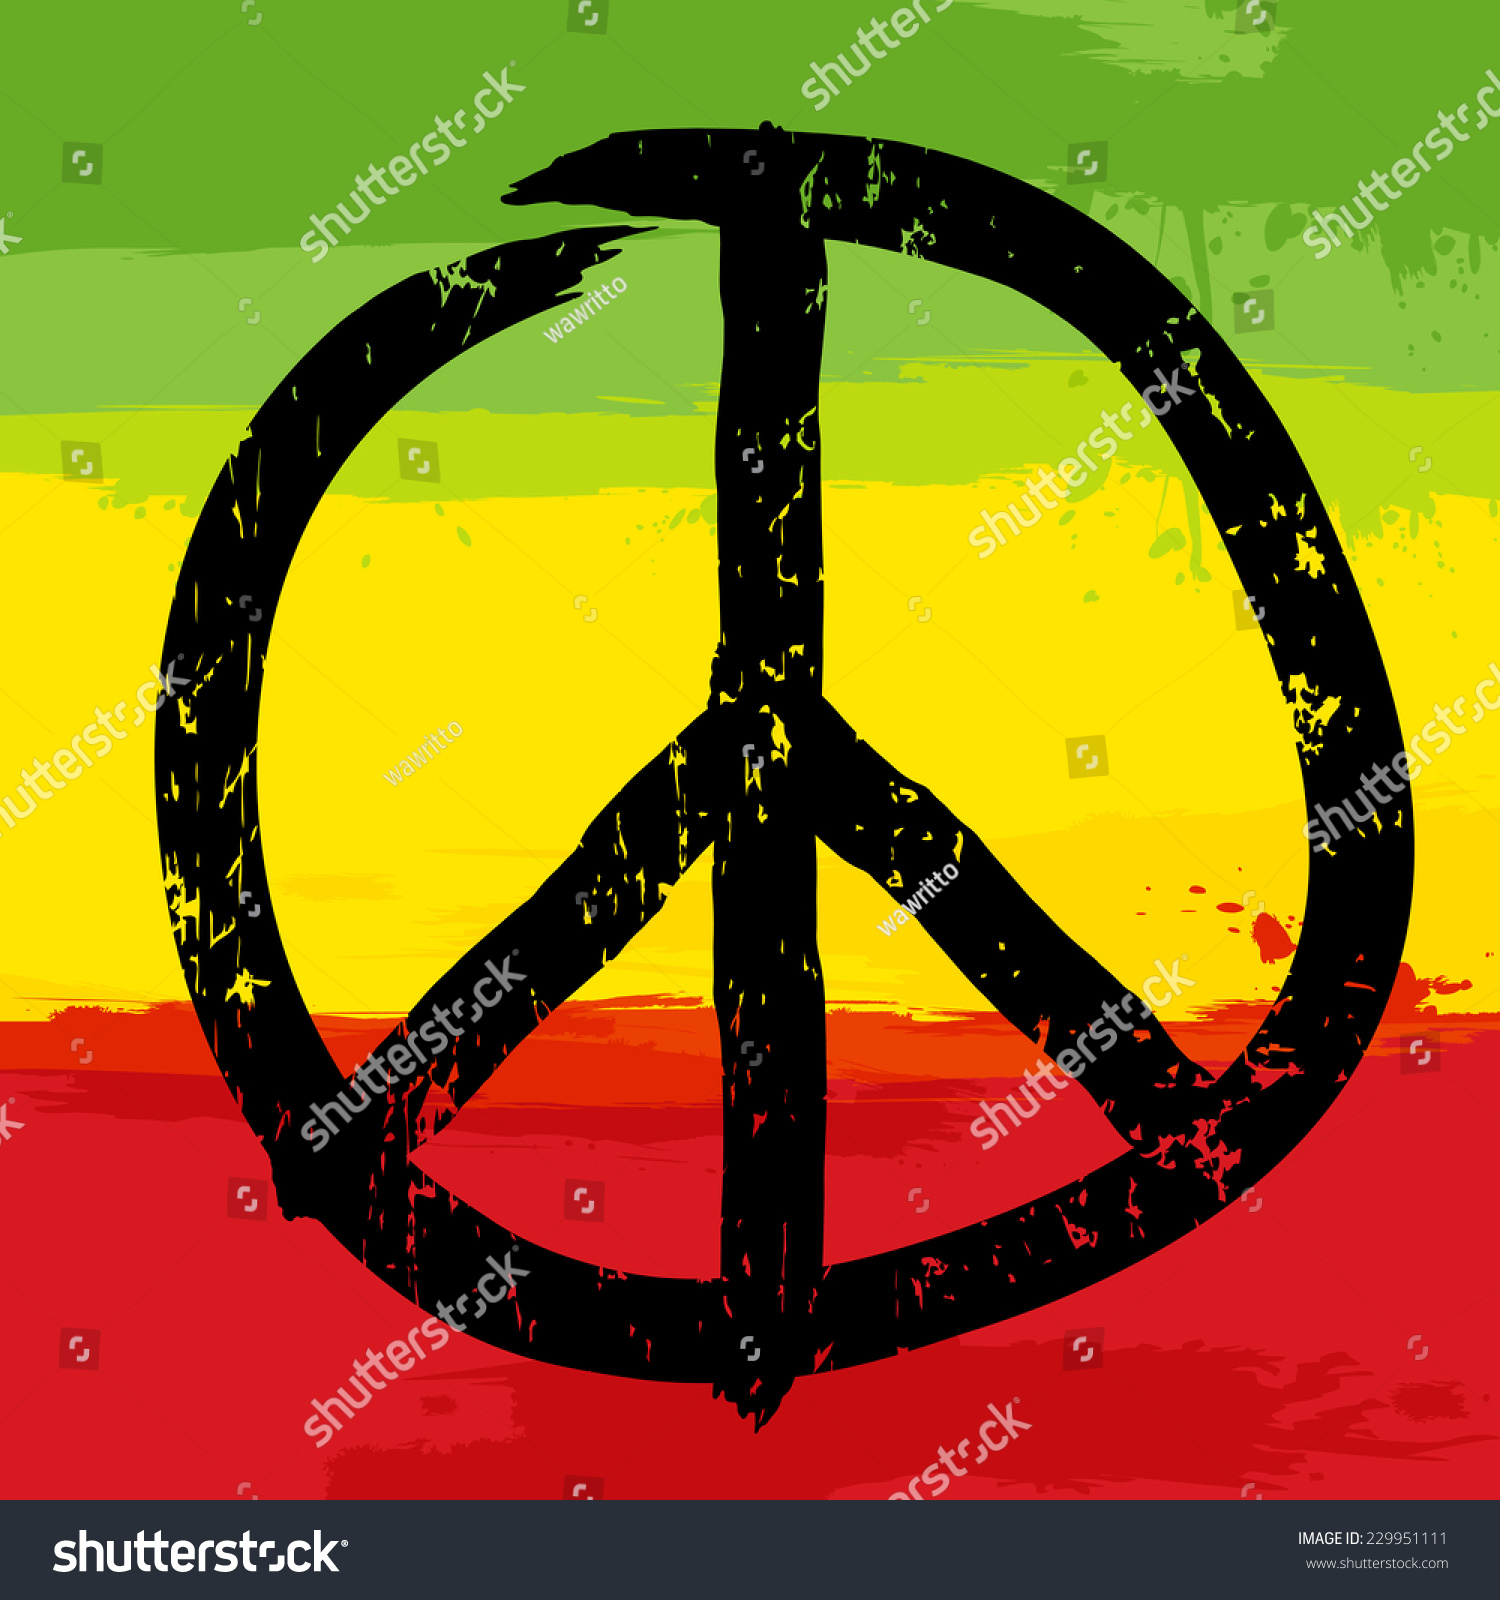 Peace symbol rastafarian colors background vector stock vector peace symbol and rastafarian colors in background vector illustration biocorpaavc Image collections